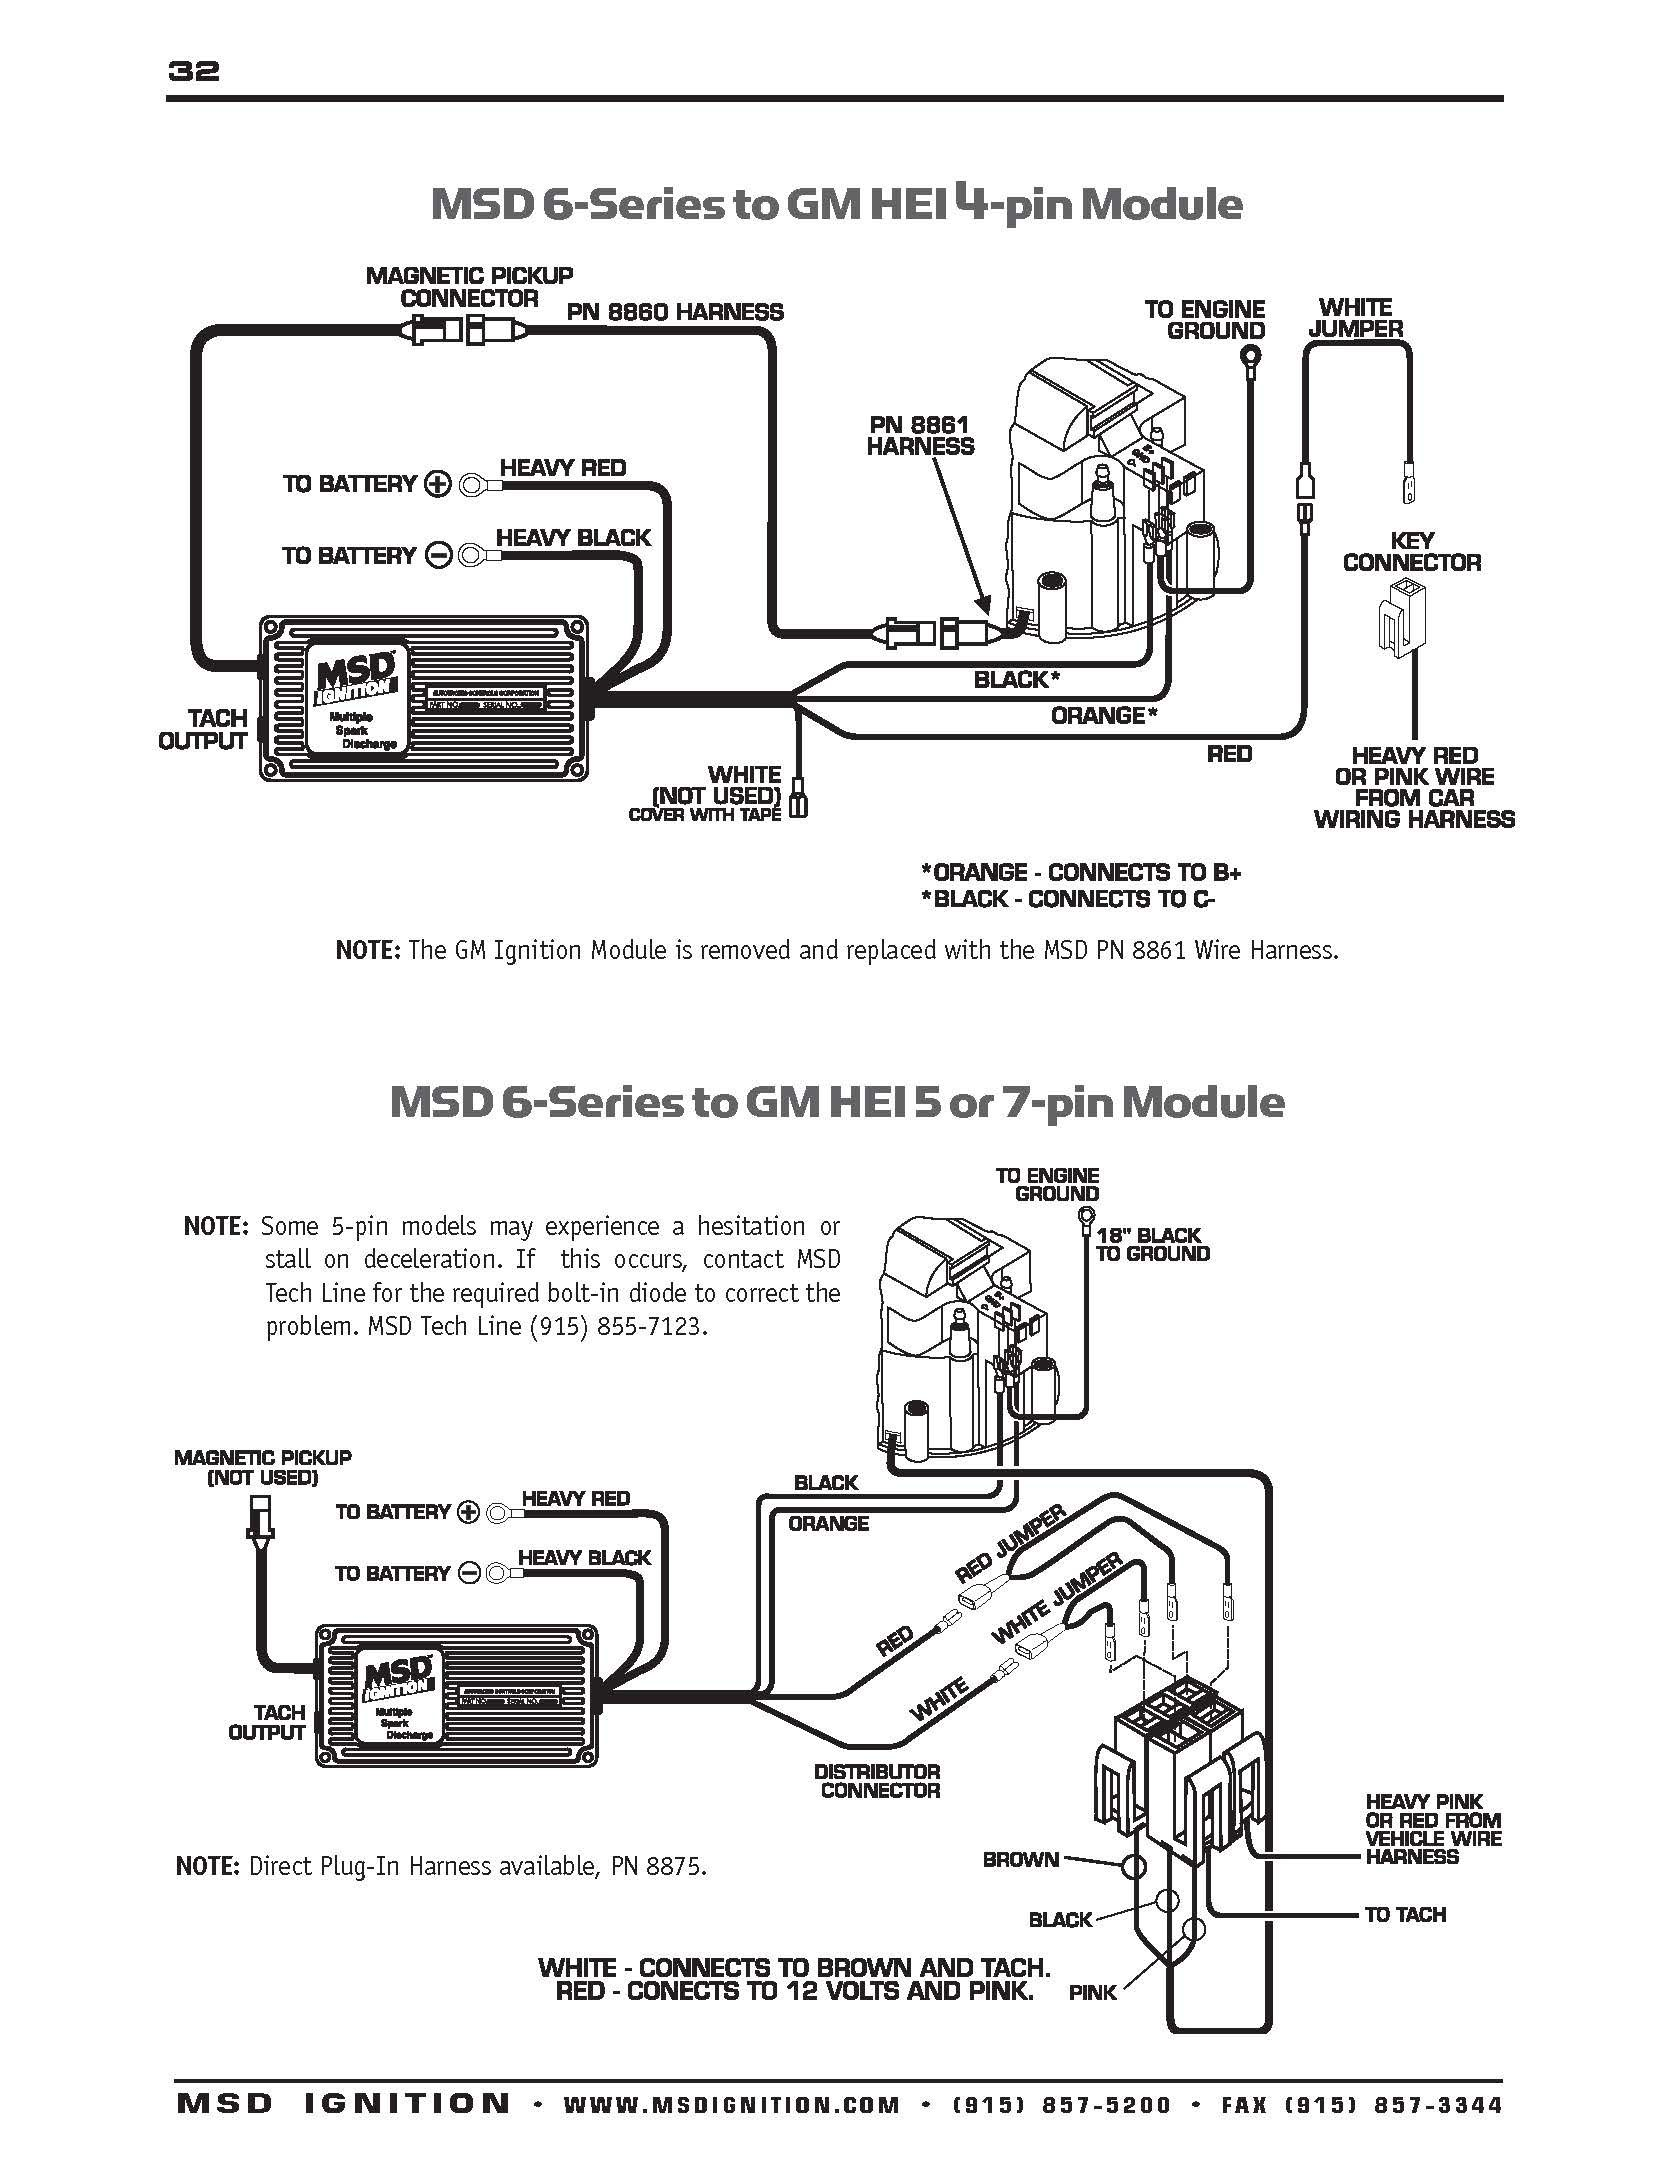 msd ignition wiring diagrams 1966 chevelle cars chevy wire msd ignition wiring diagrams